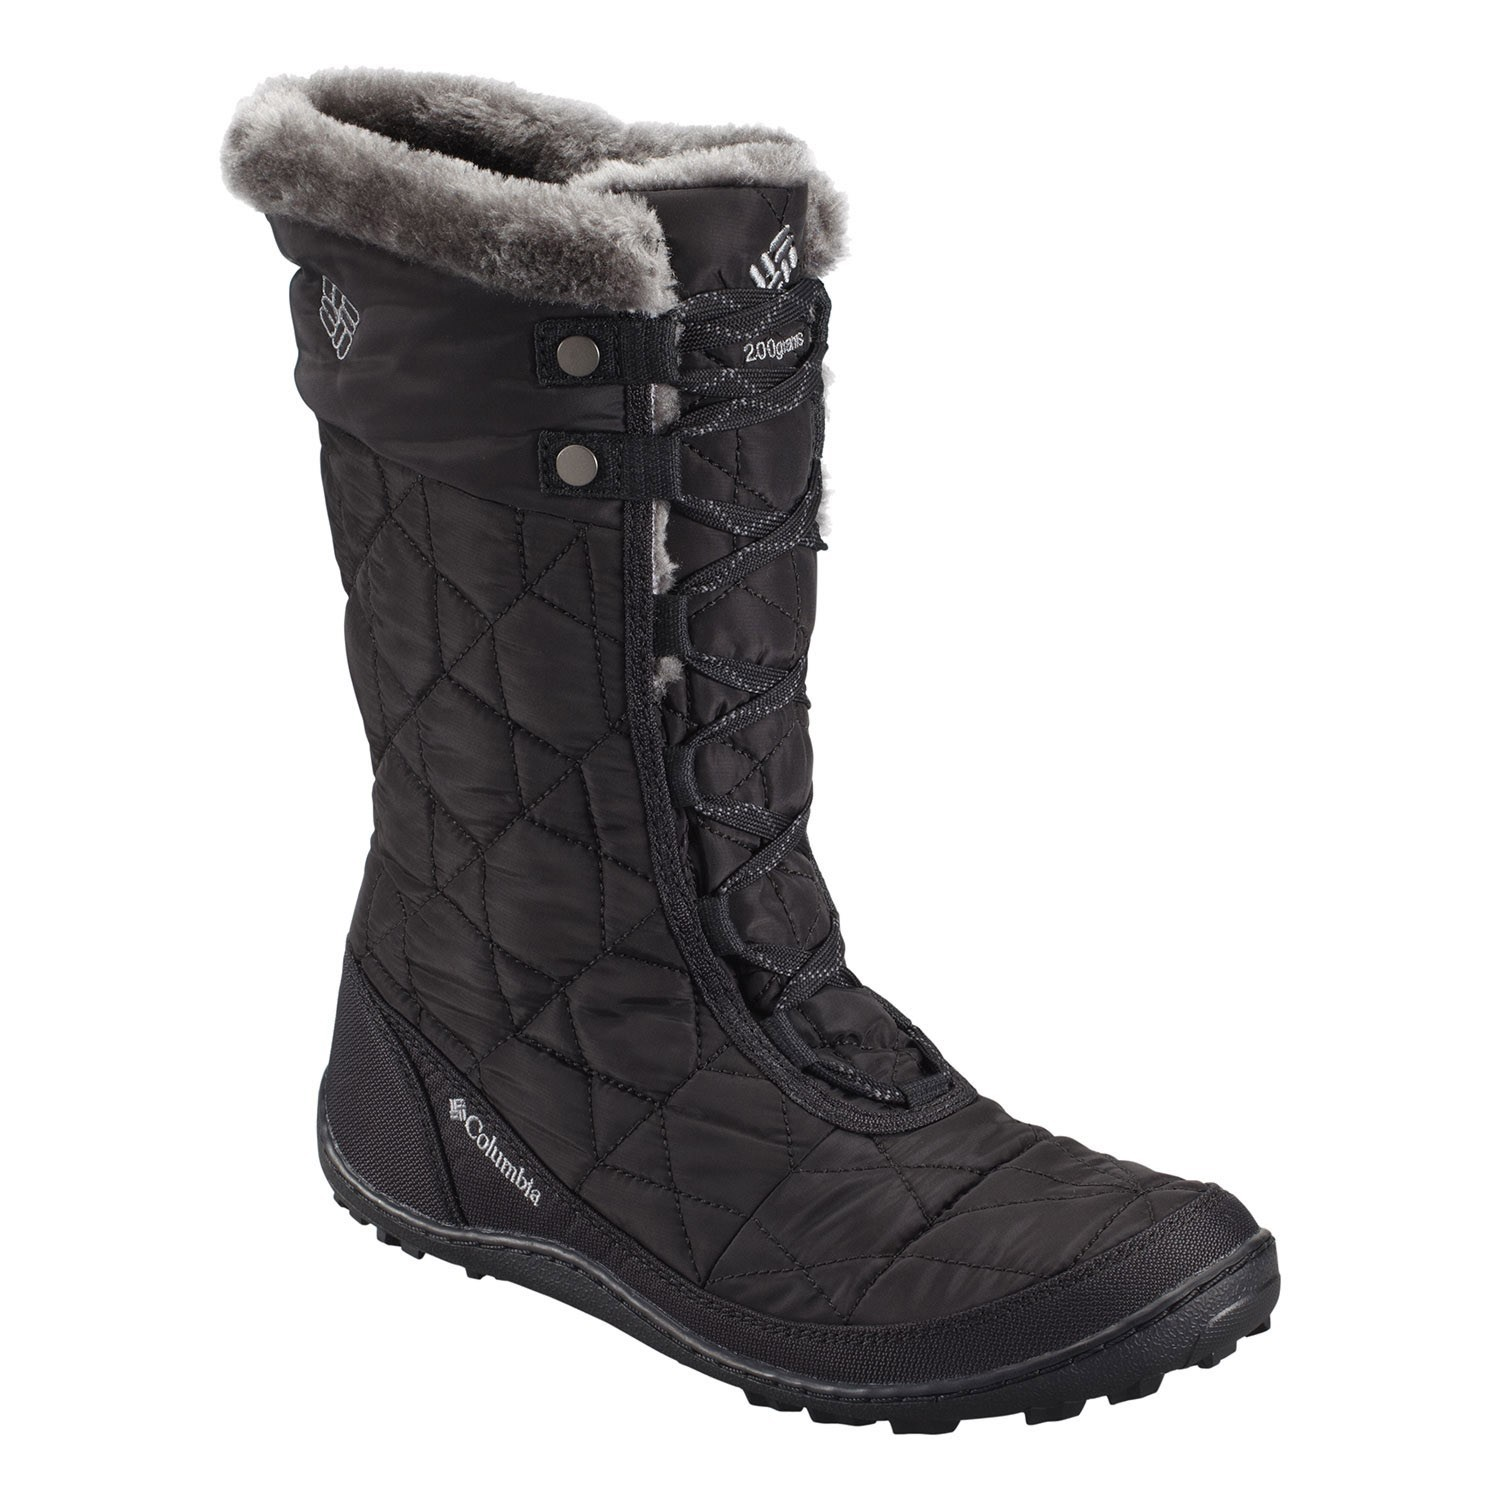 Columbia Minx Mid Omni-Heat Twill 1554031010 200g insulated